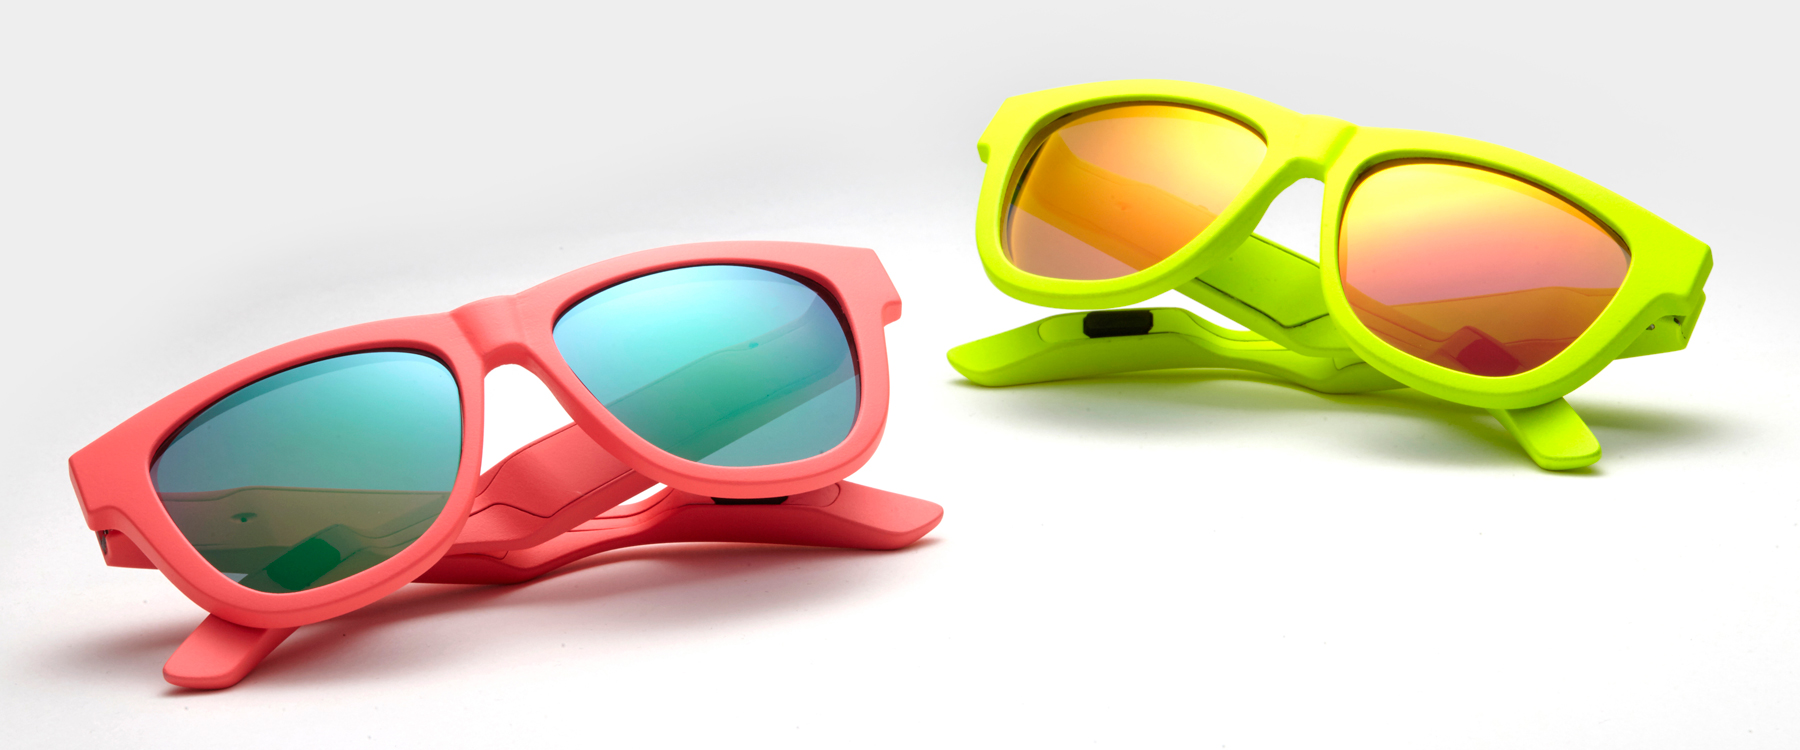 zungle-panther-sunglasses-headphones-designboom-header